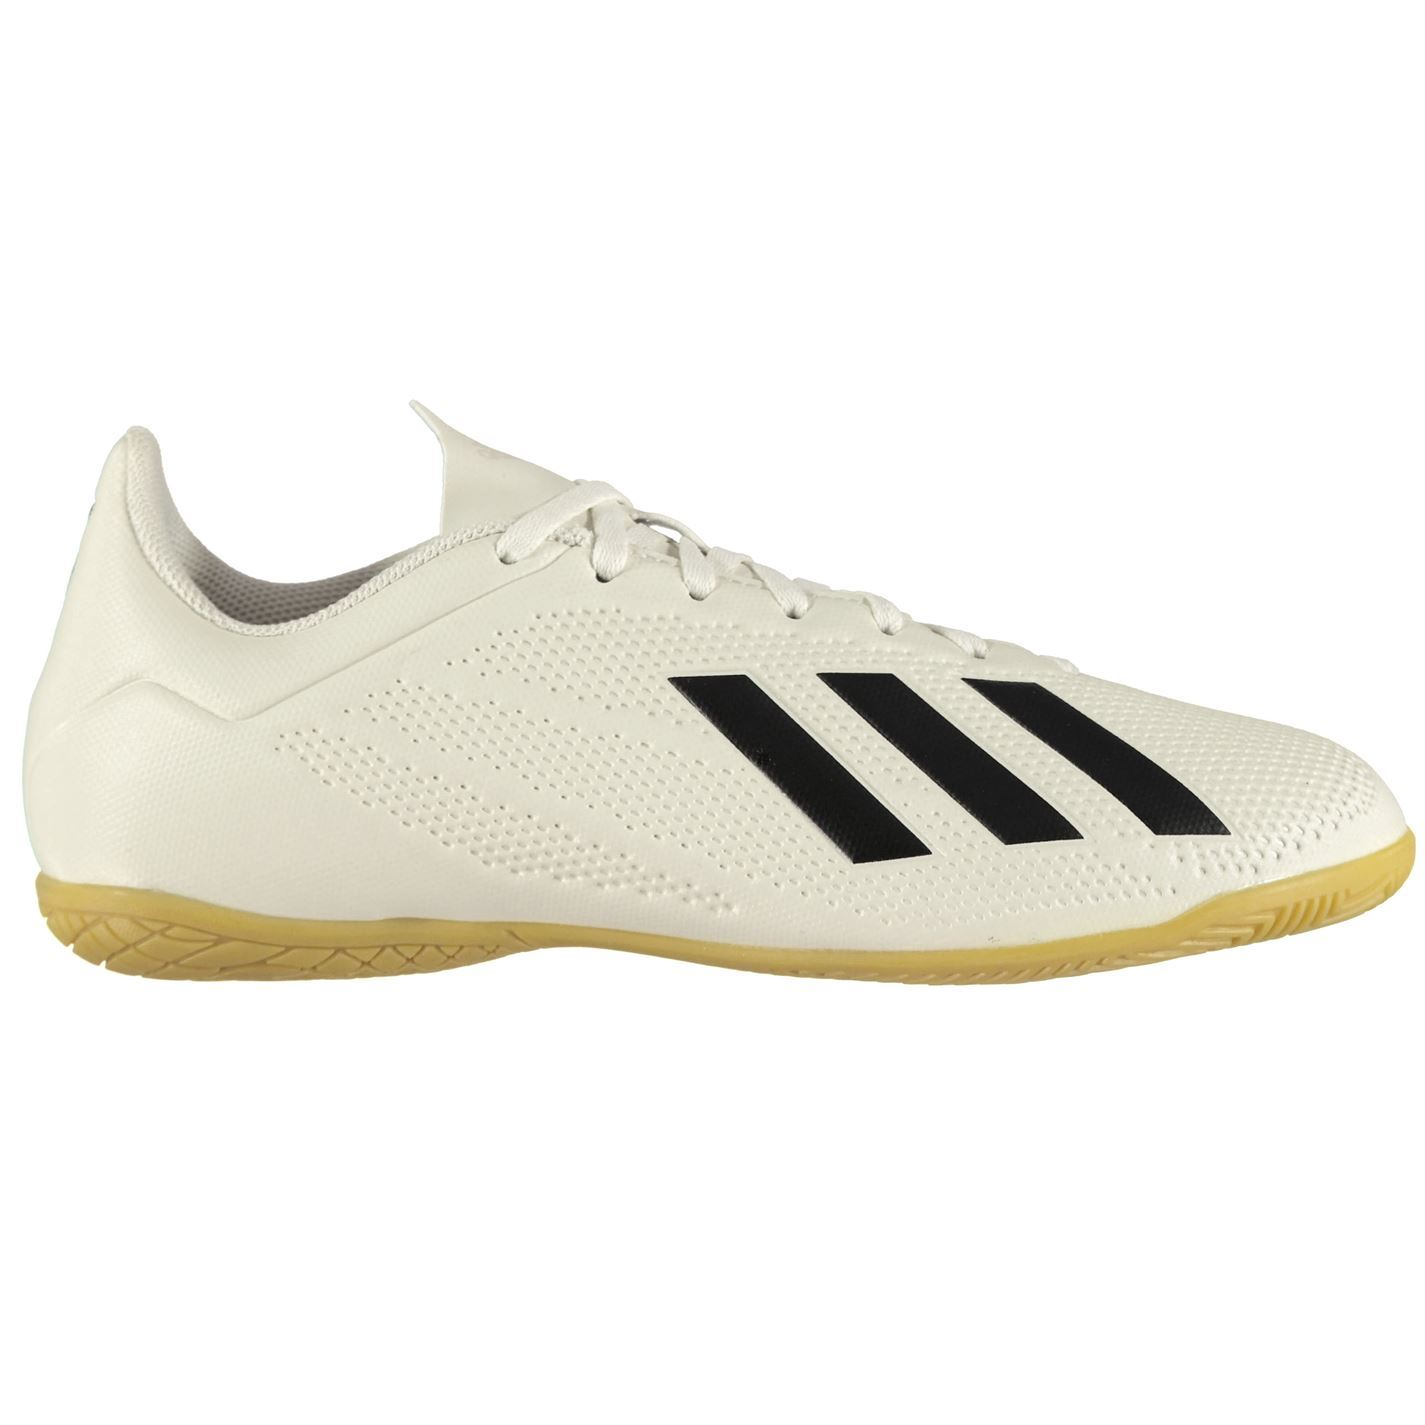 wholesale dealer b15a7 6f13e ... adidas X Tango 18.4 Indoor Football Trainers Mens Soccer Futsal Shoes  Sneakers